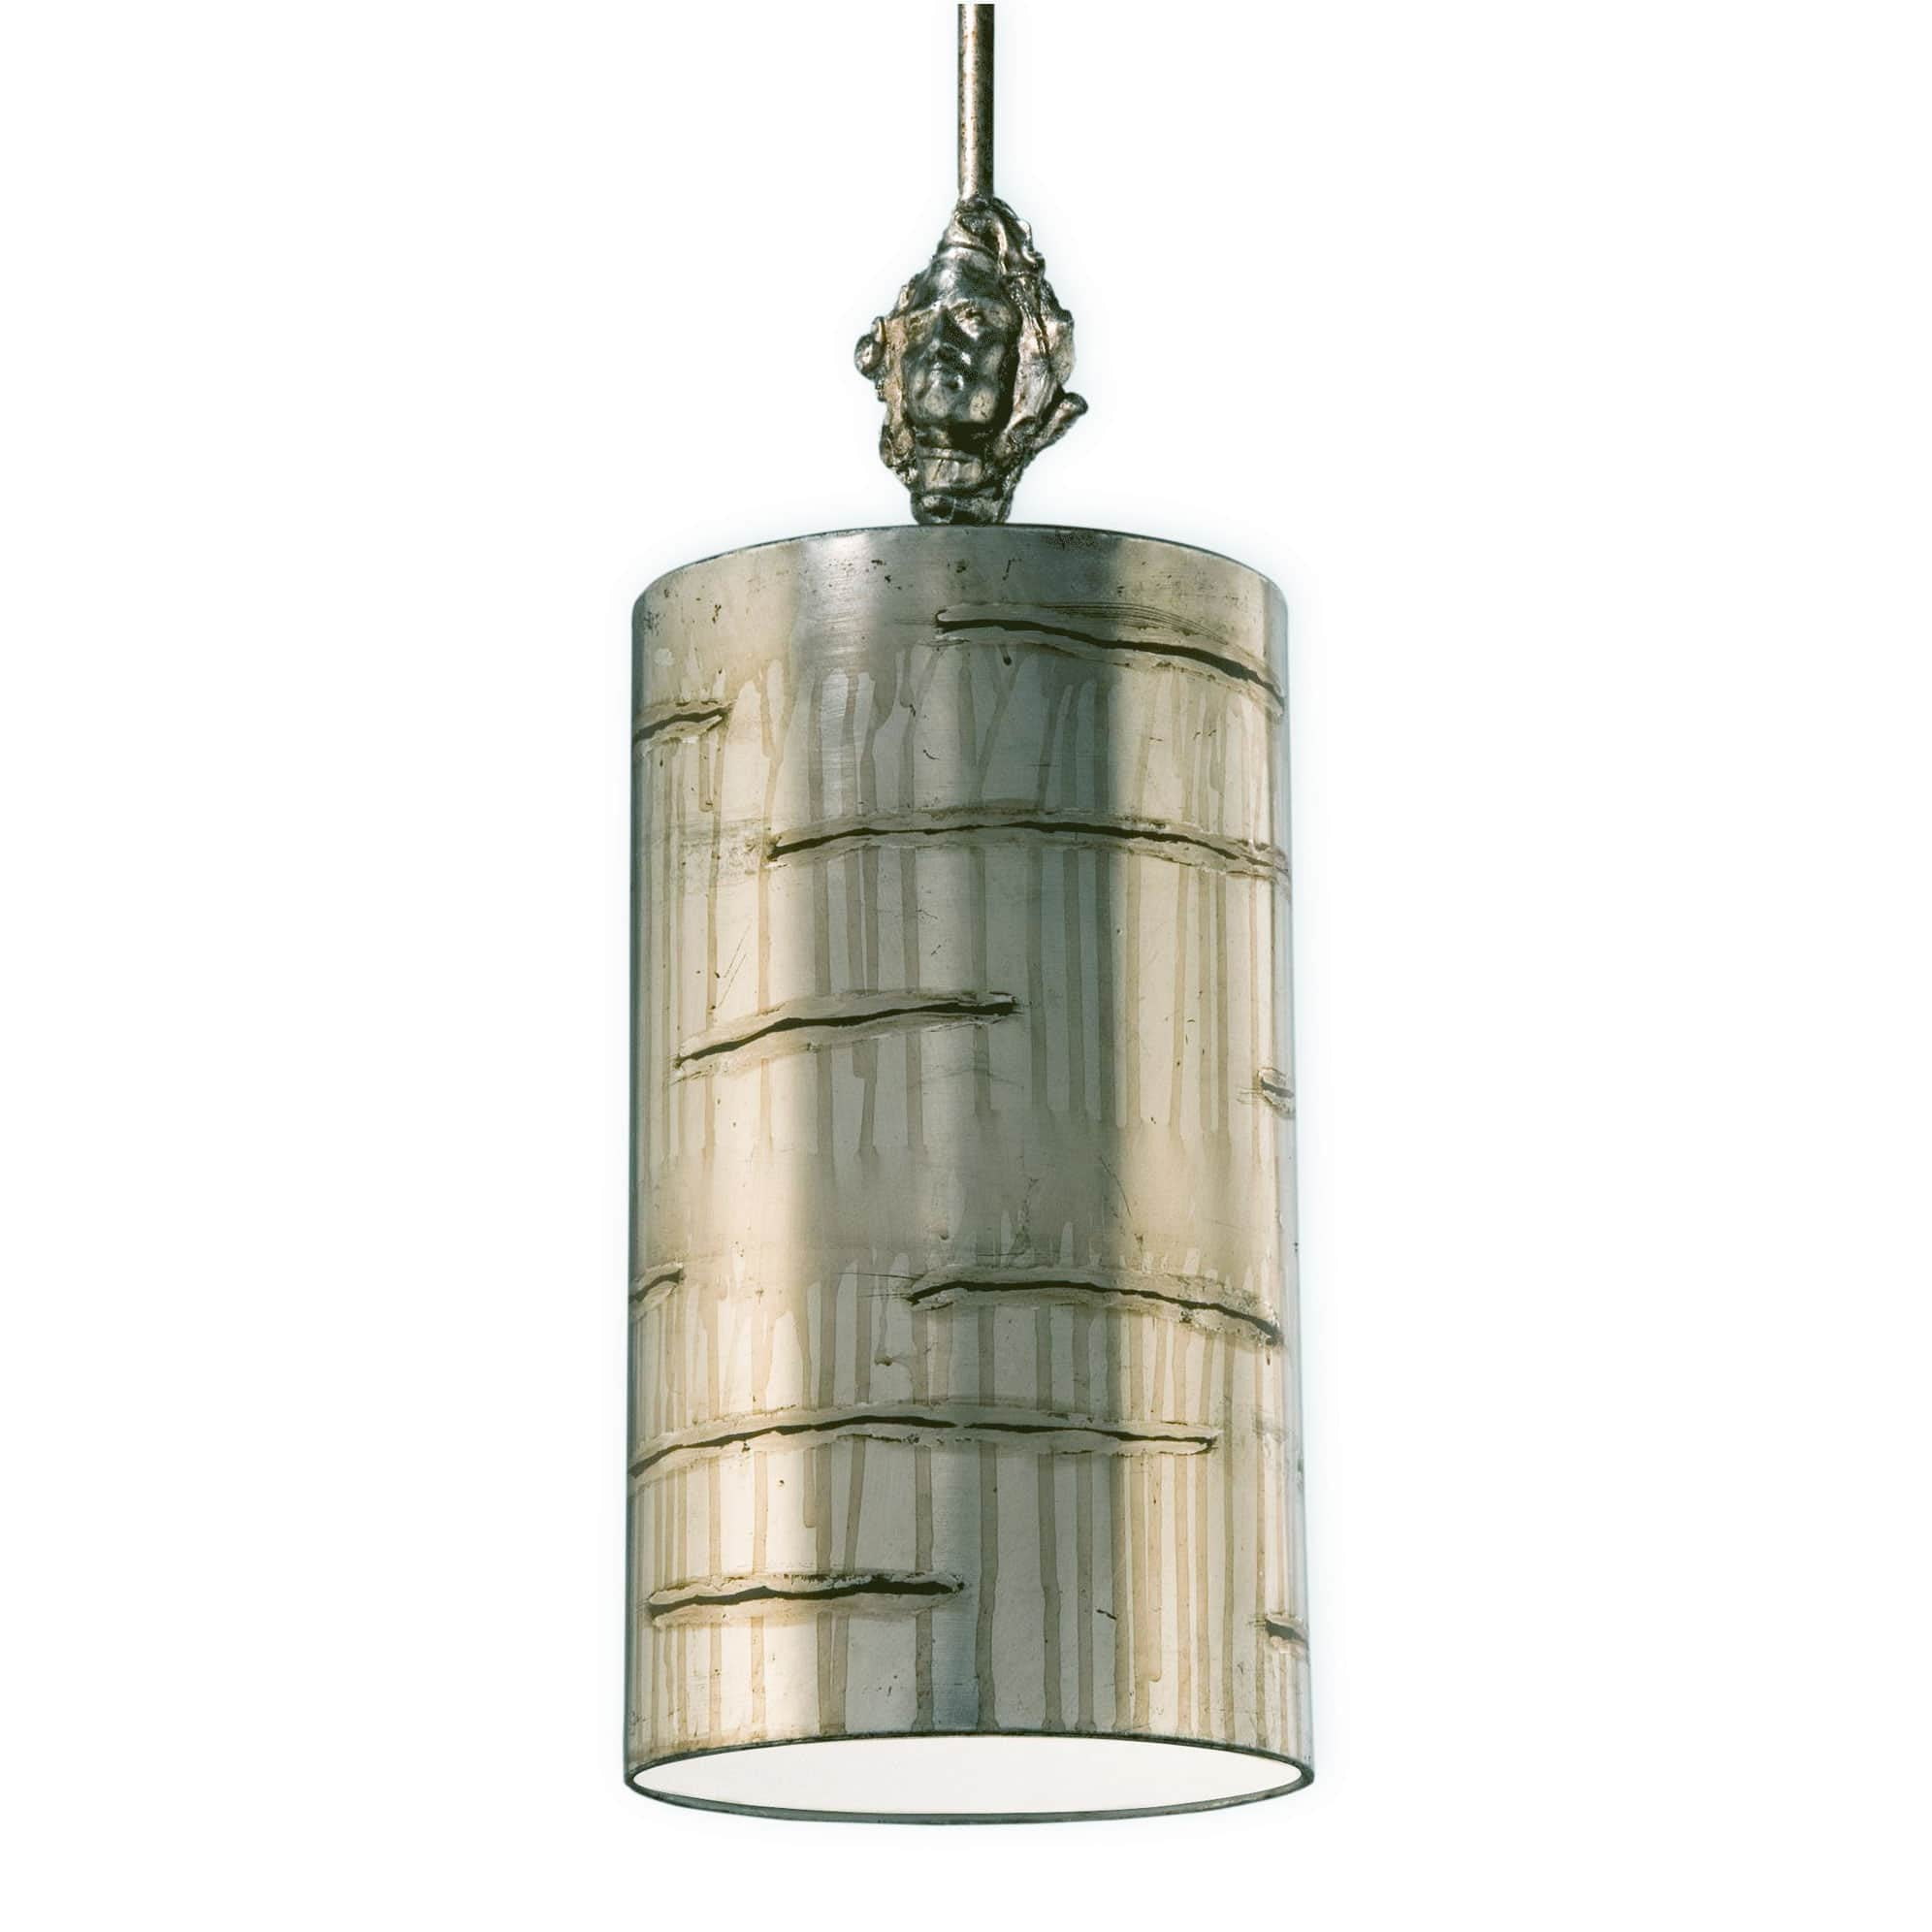 grey flory light ikea large spacing lighting pendant shade marvellous pattern lights chandelier drum inspiring